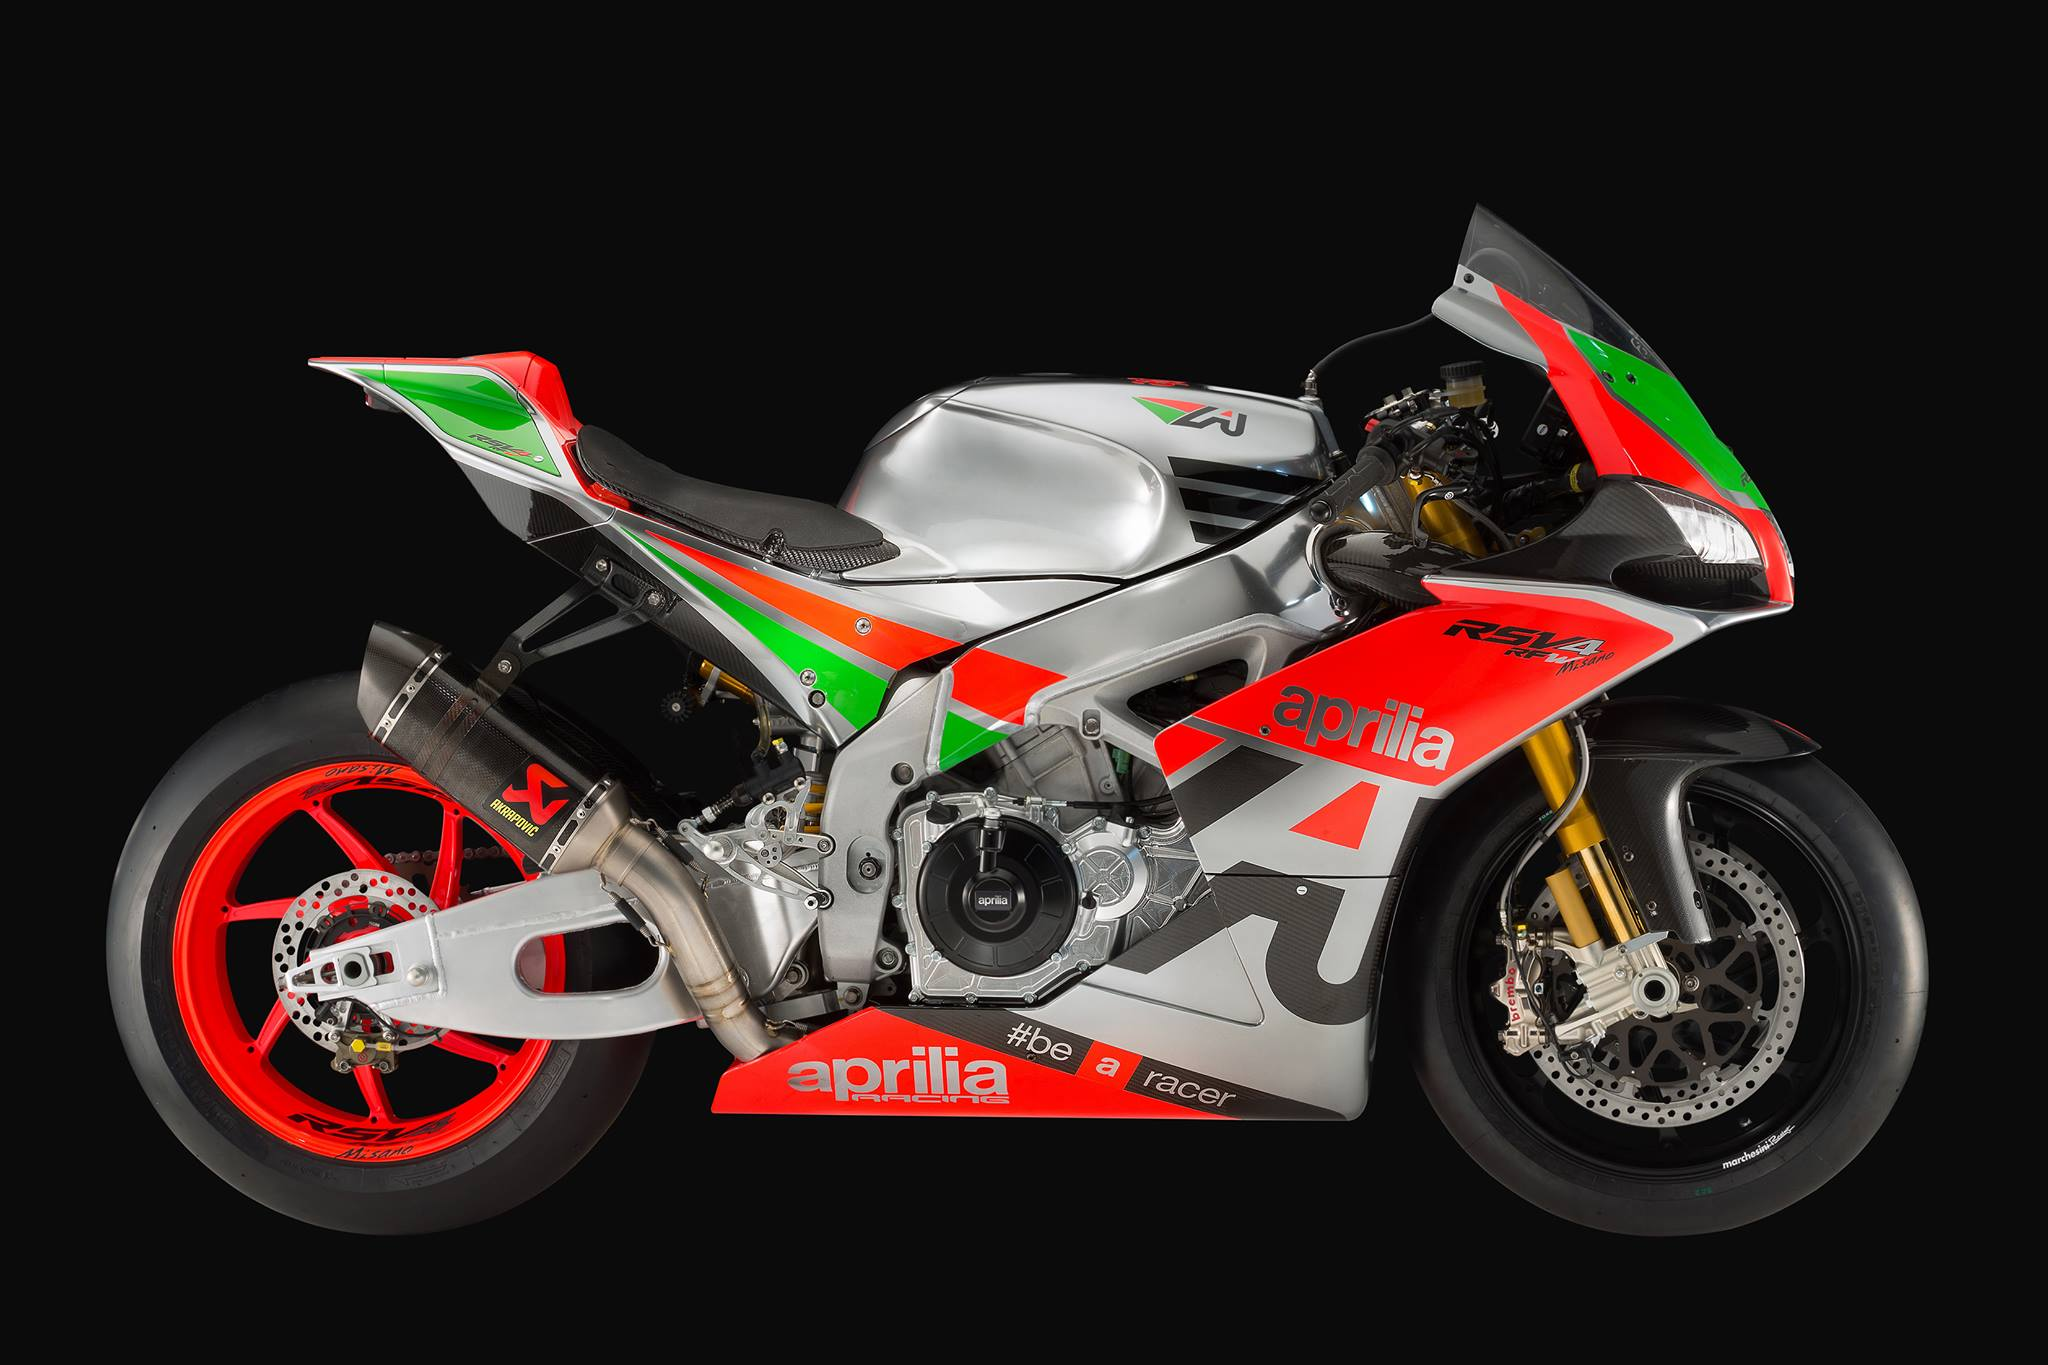 2016 aprilia rsv4 r-fw 230bhp race bike | conquest carbon